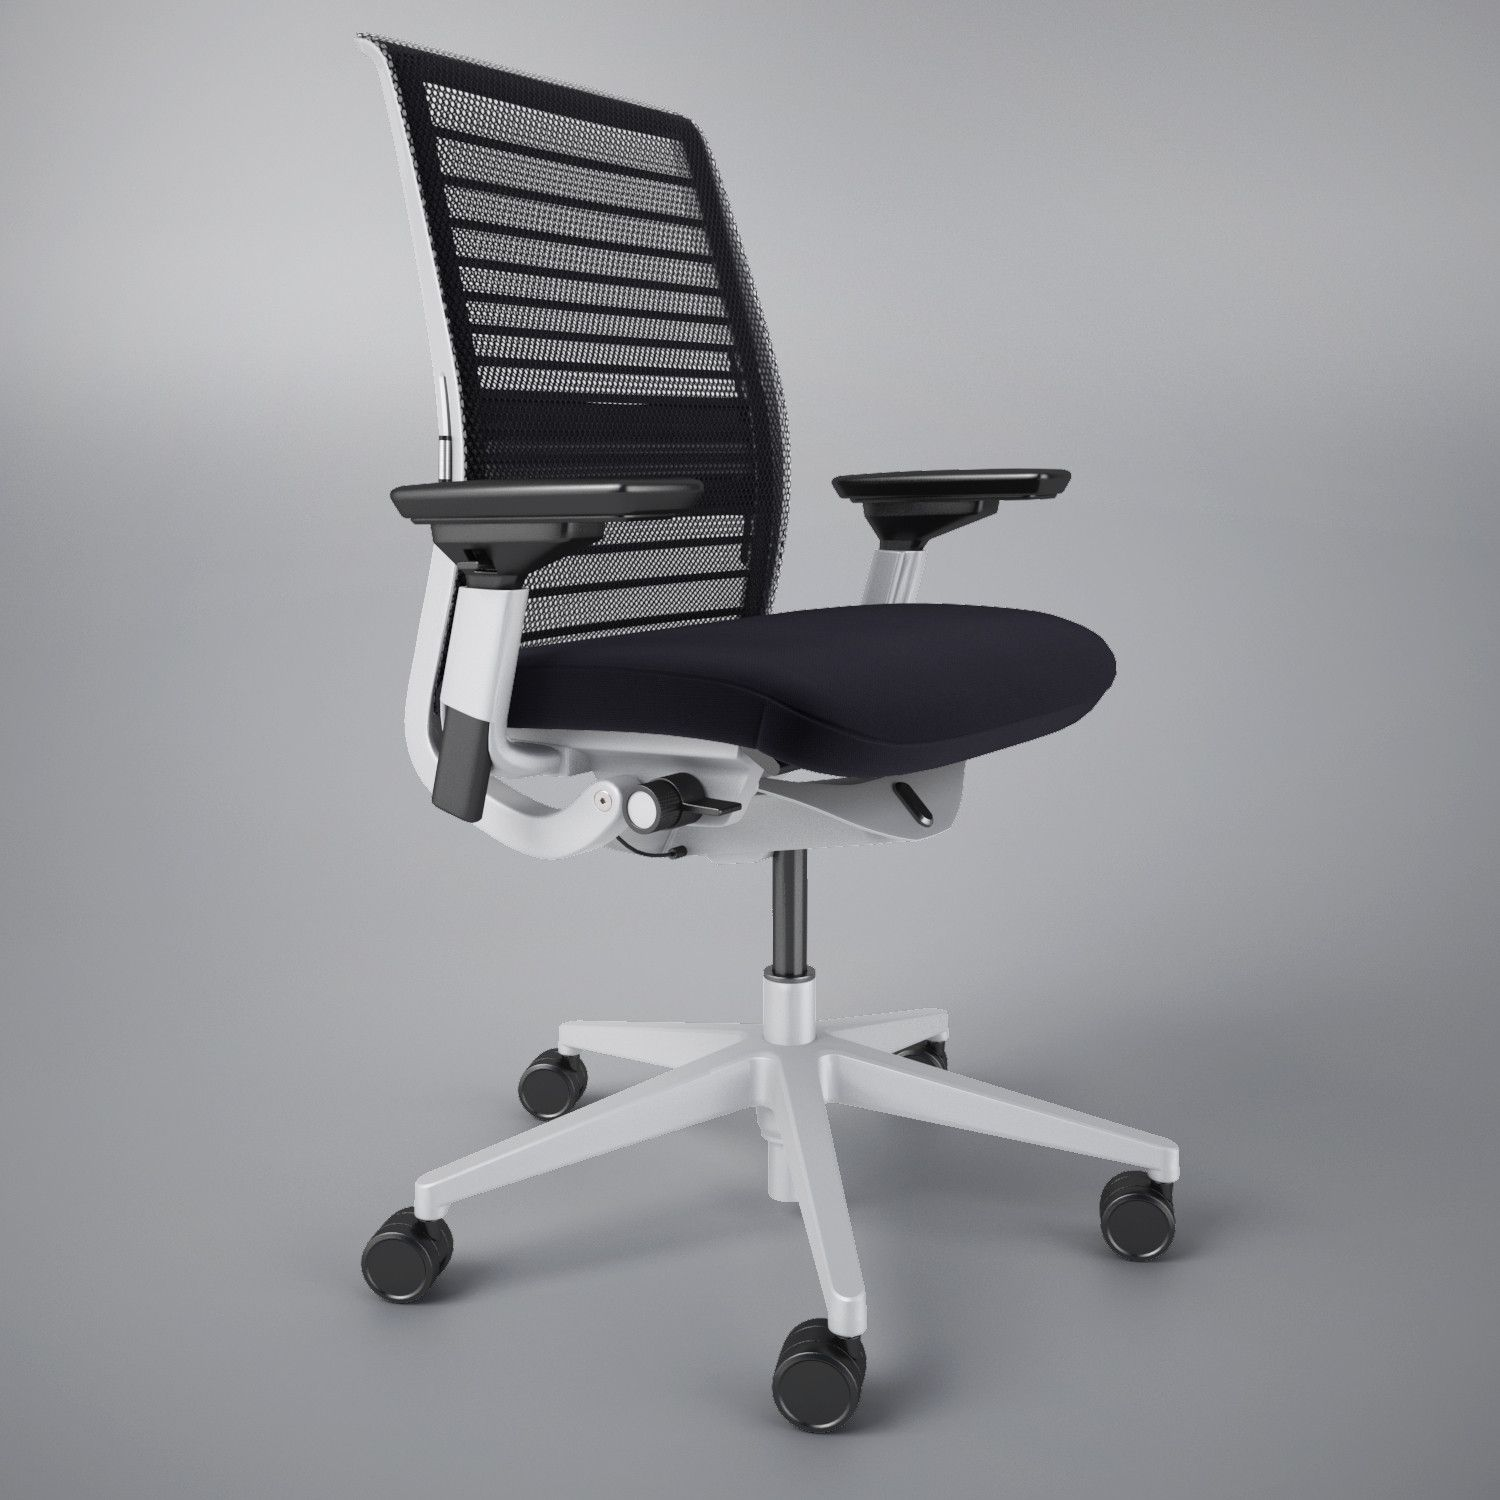 max steelcase think office chair Office chair, Steelcase